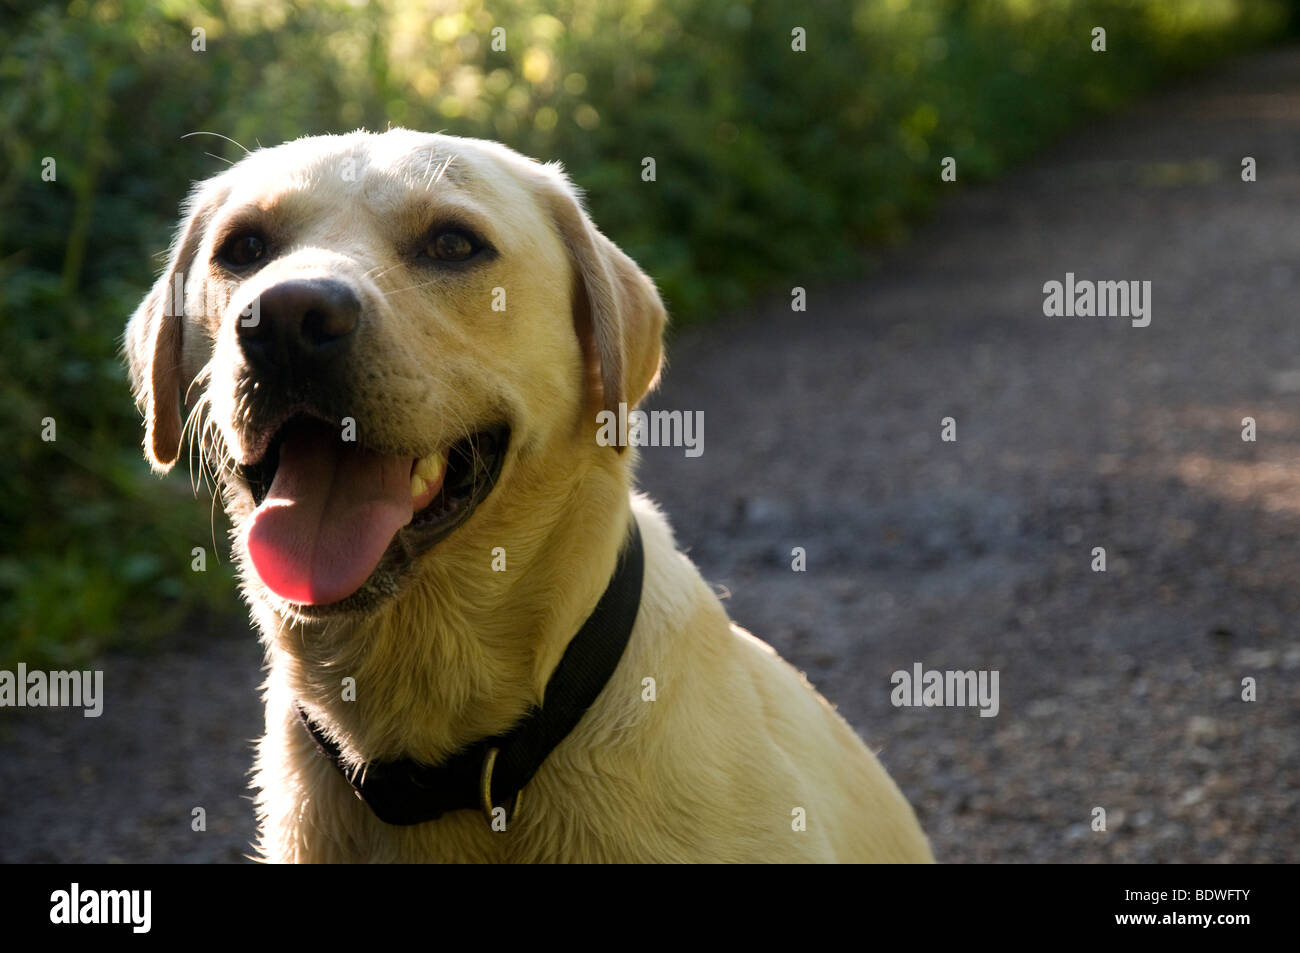 Yellow labrador retriever dog - Stock Image